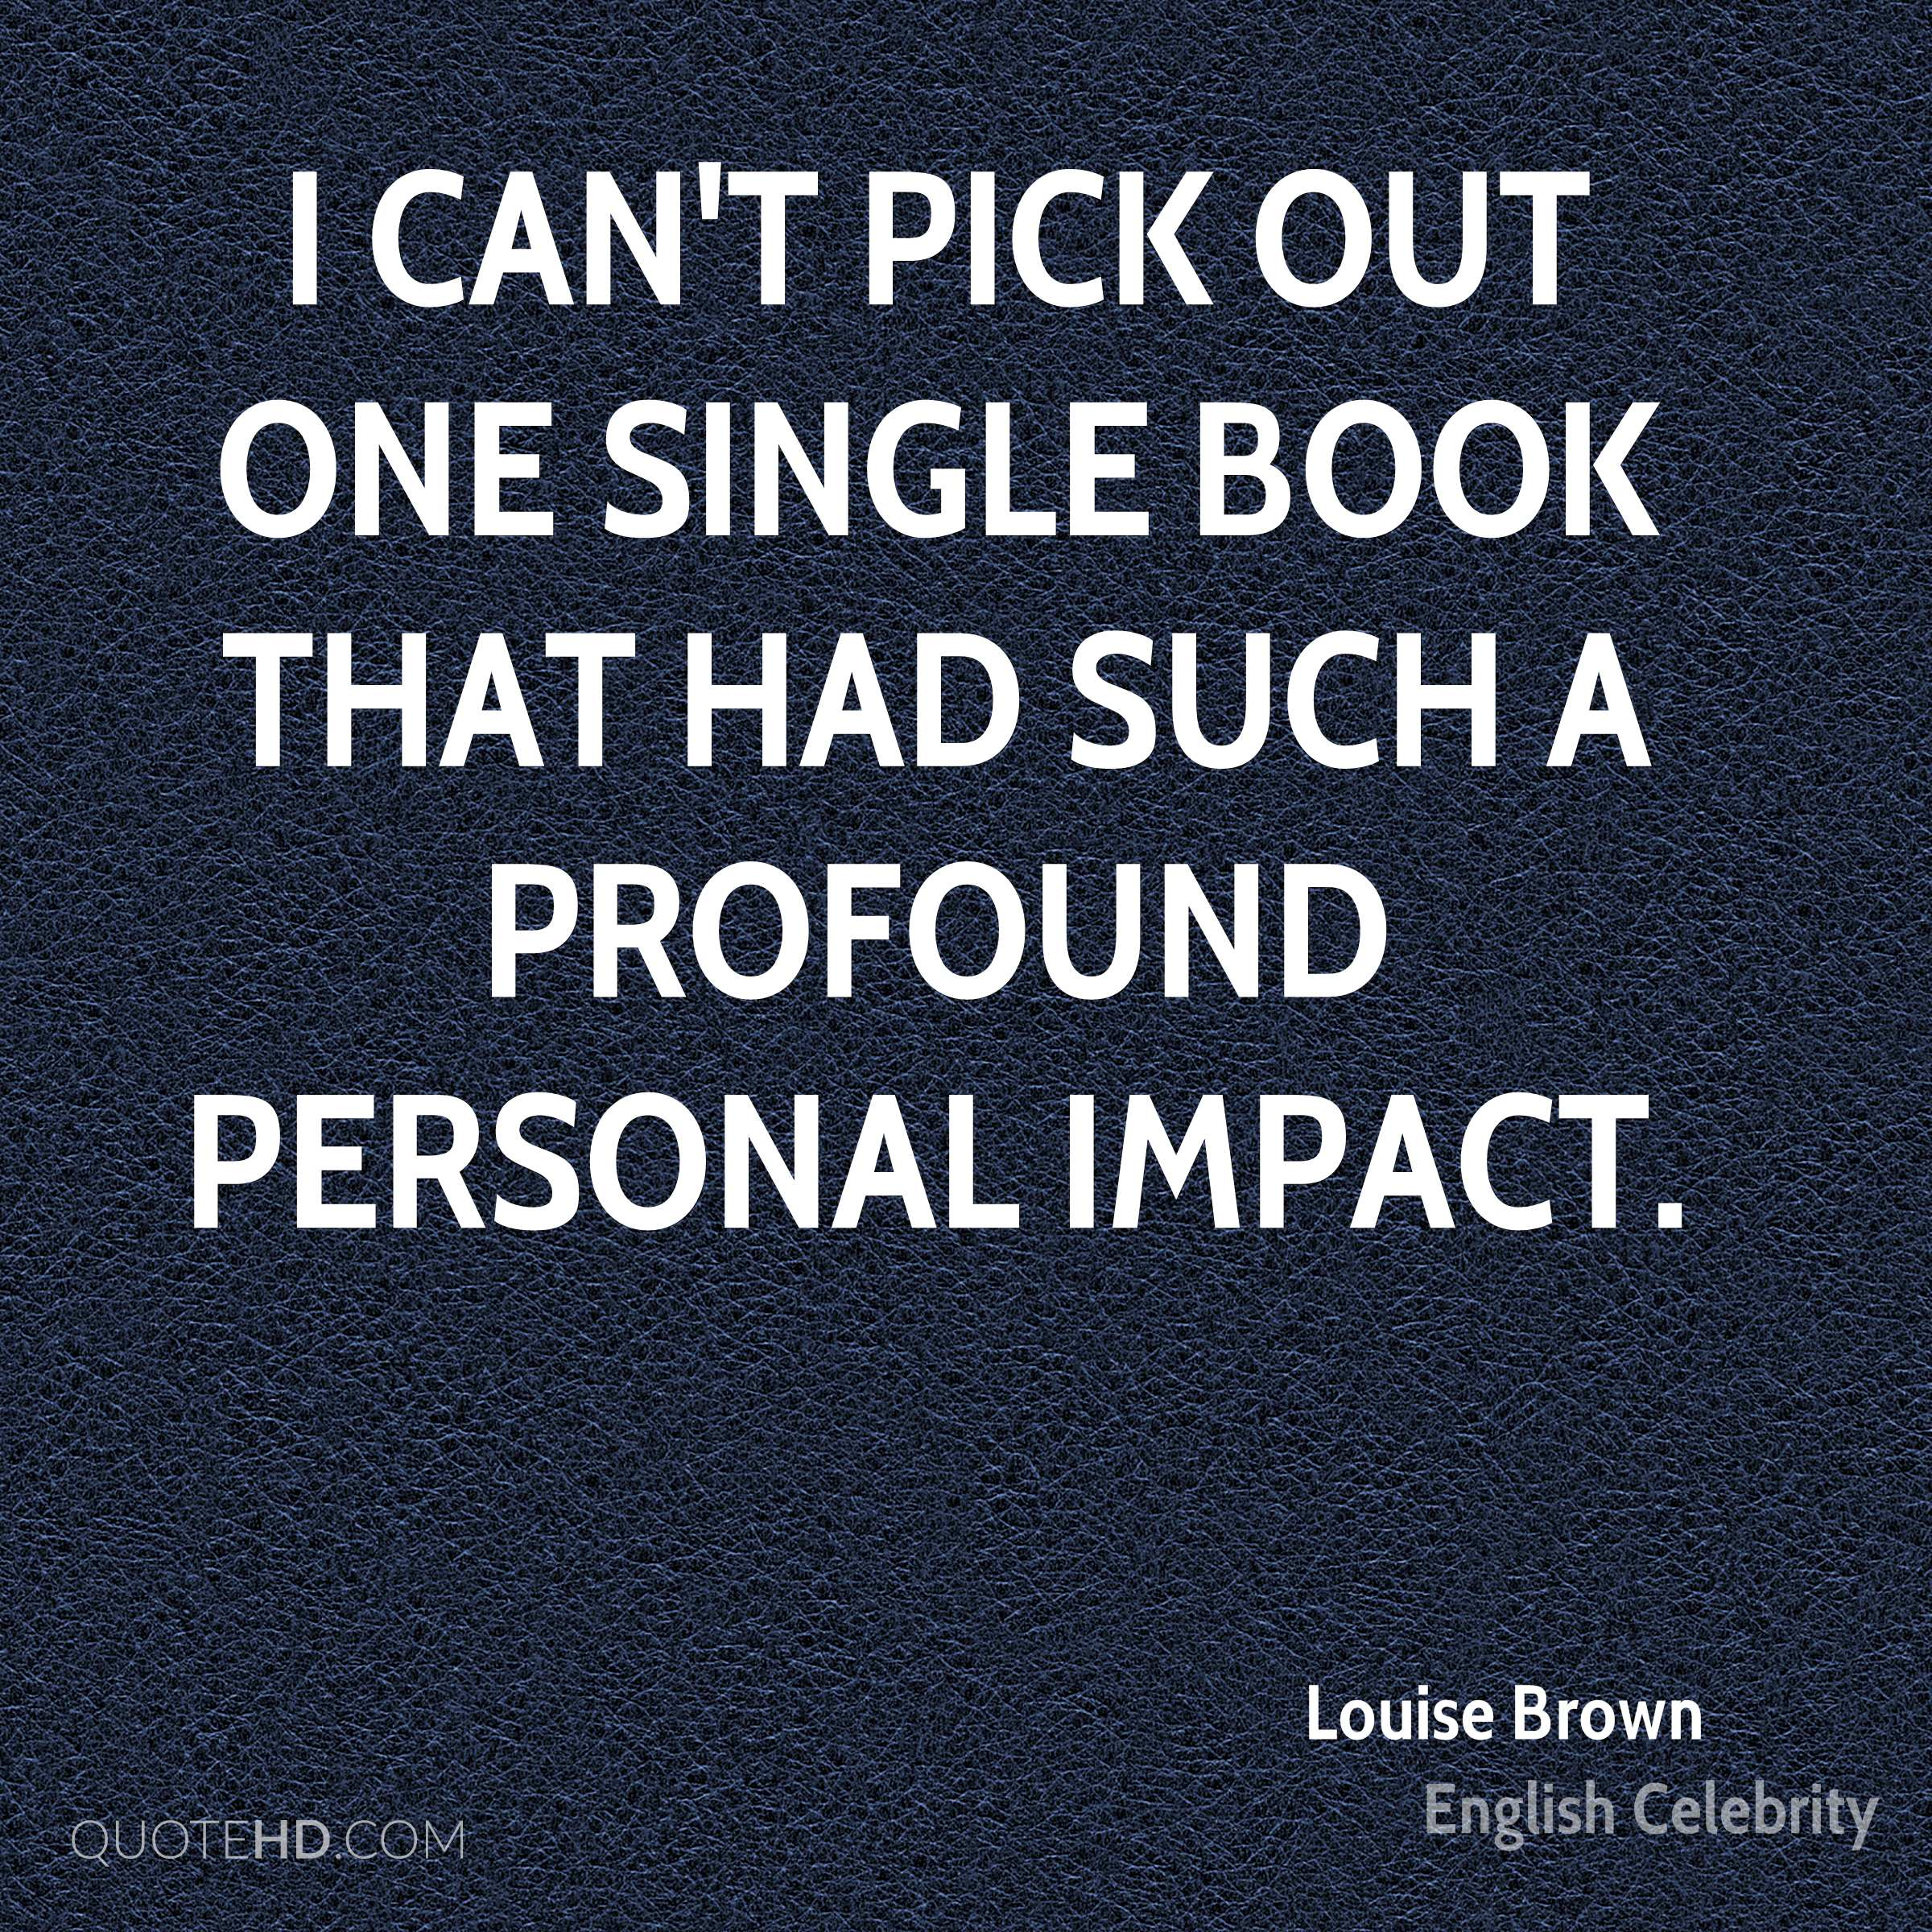 I can't pick out one single book that had such a profound personal impact.